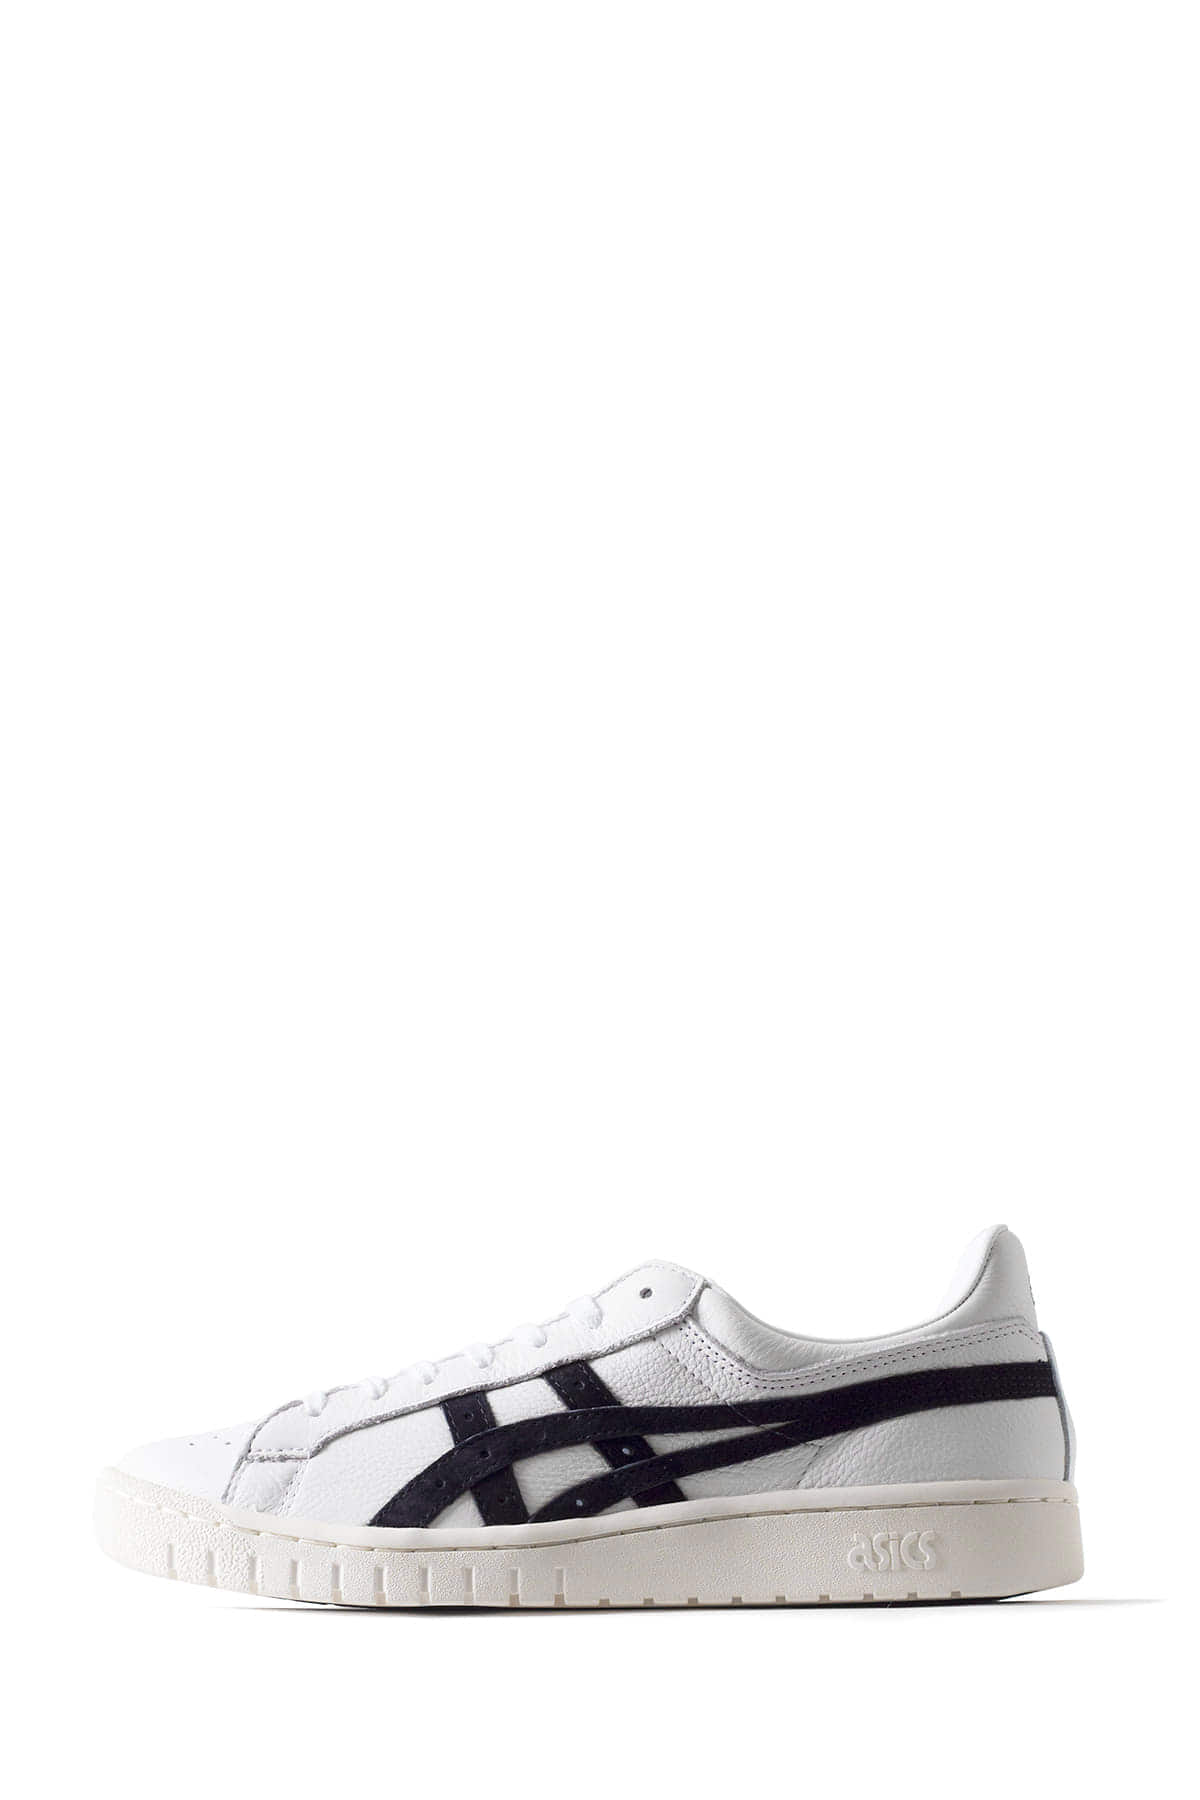 asics tiger : GEL-PTG HL7XO (White / Black)